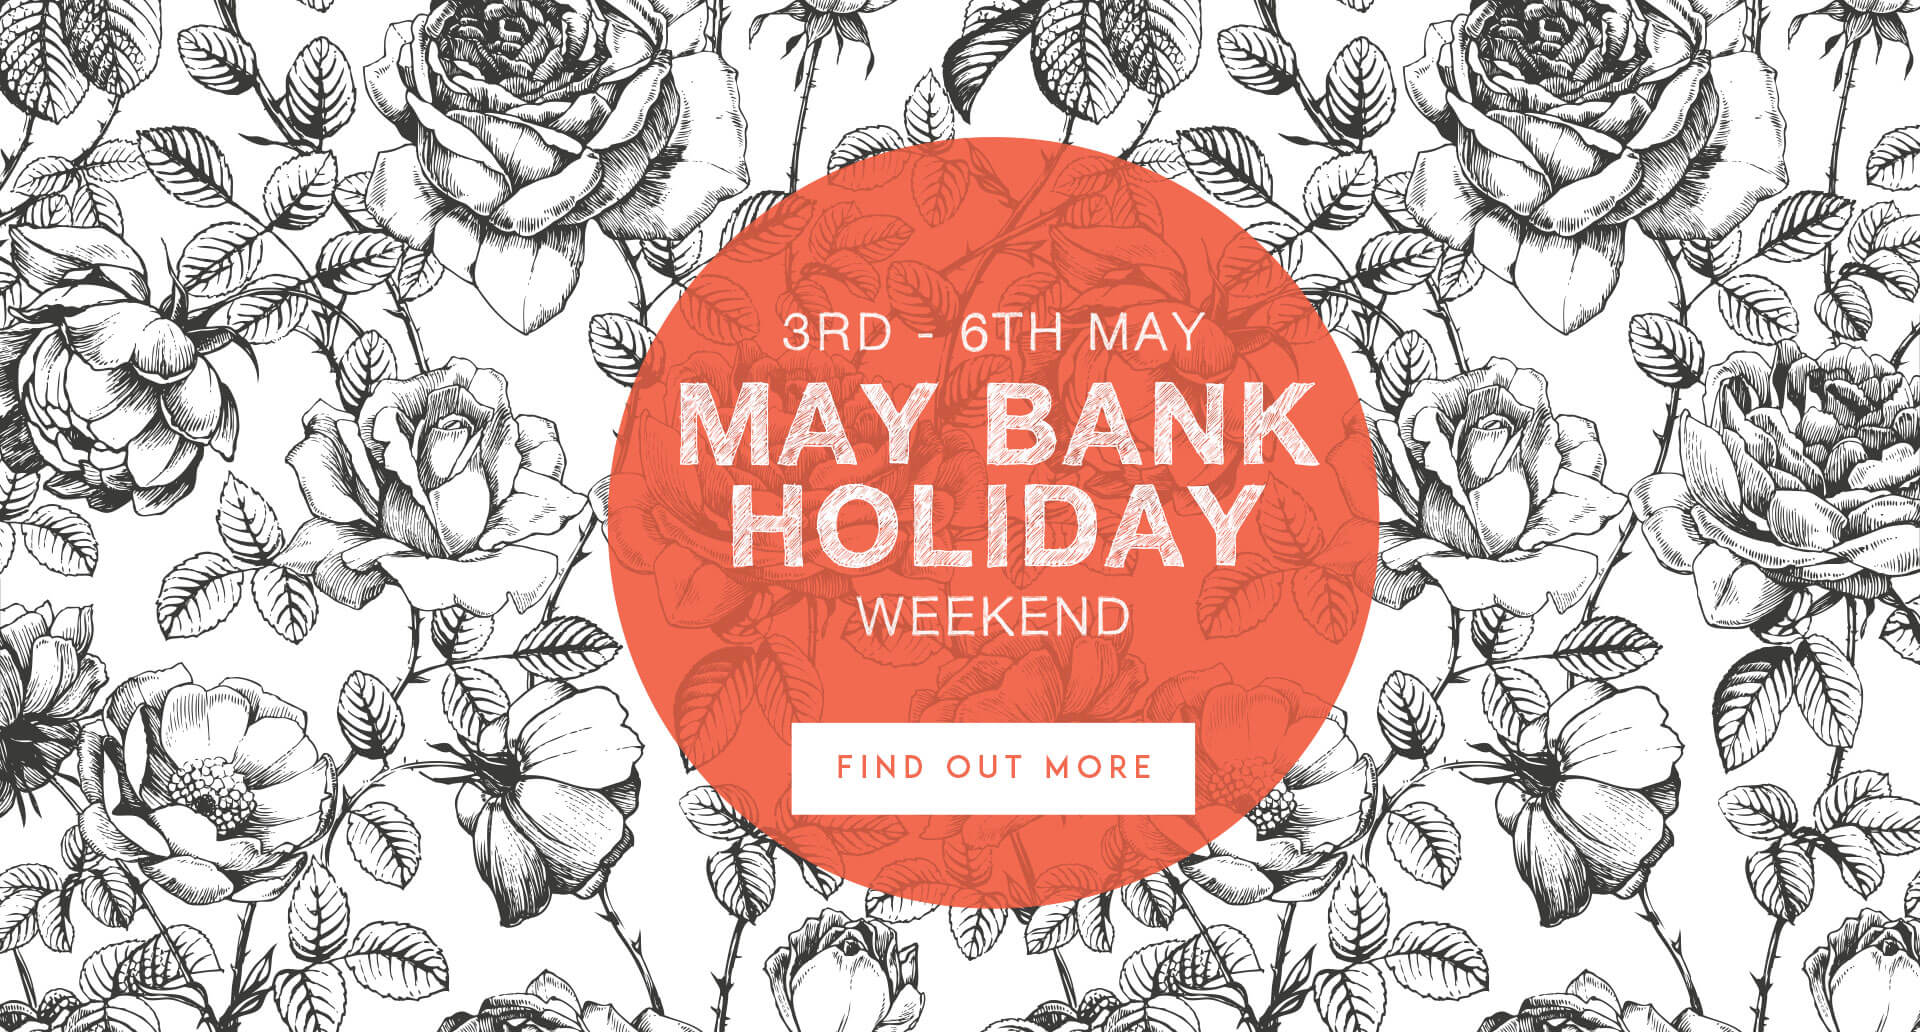 May Bank Holiday at The Drummond